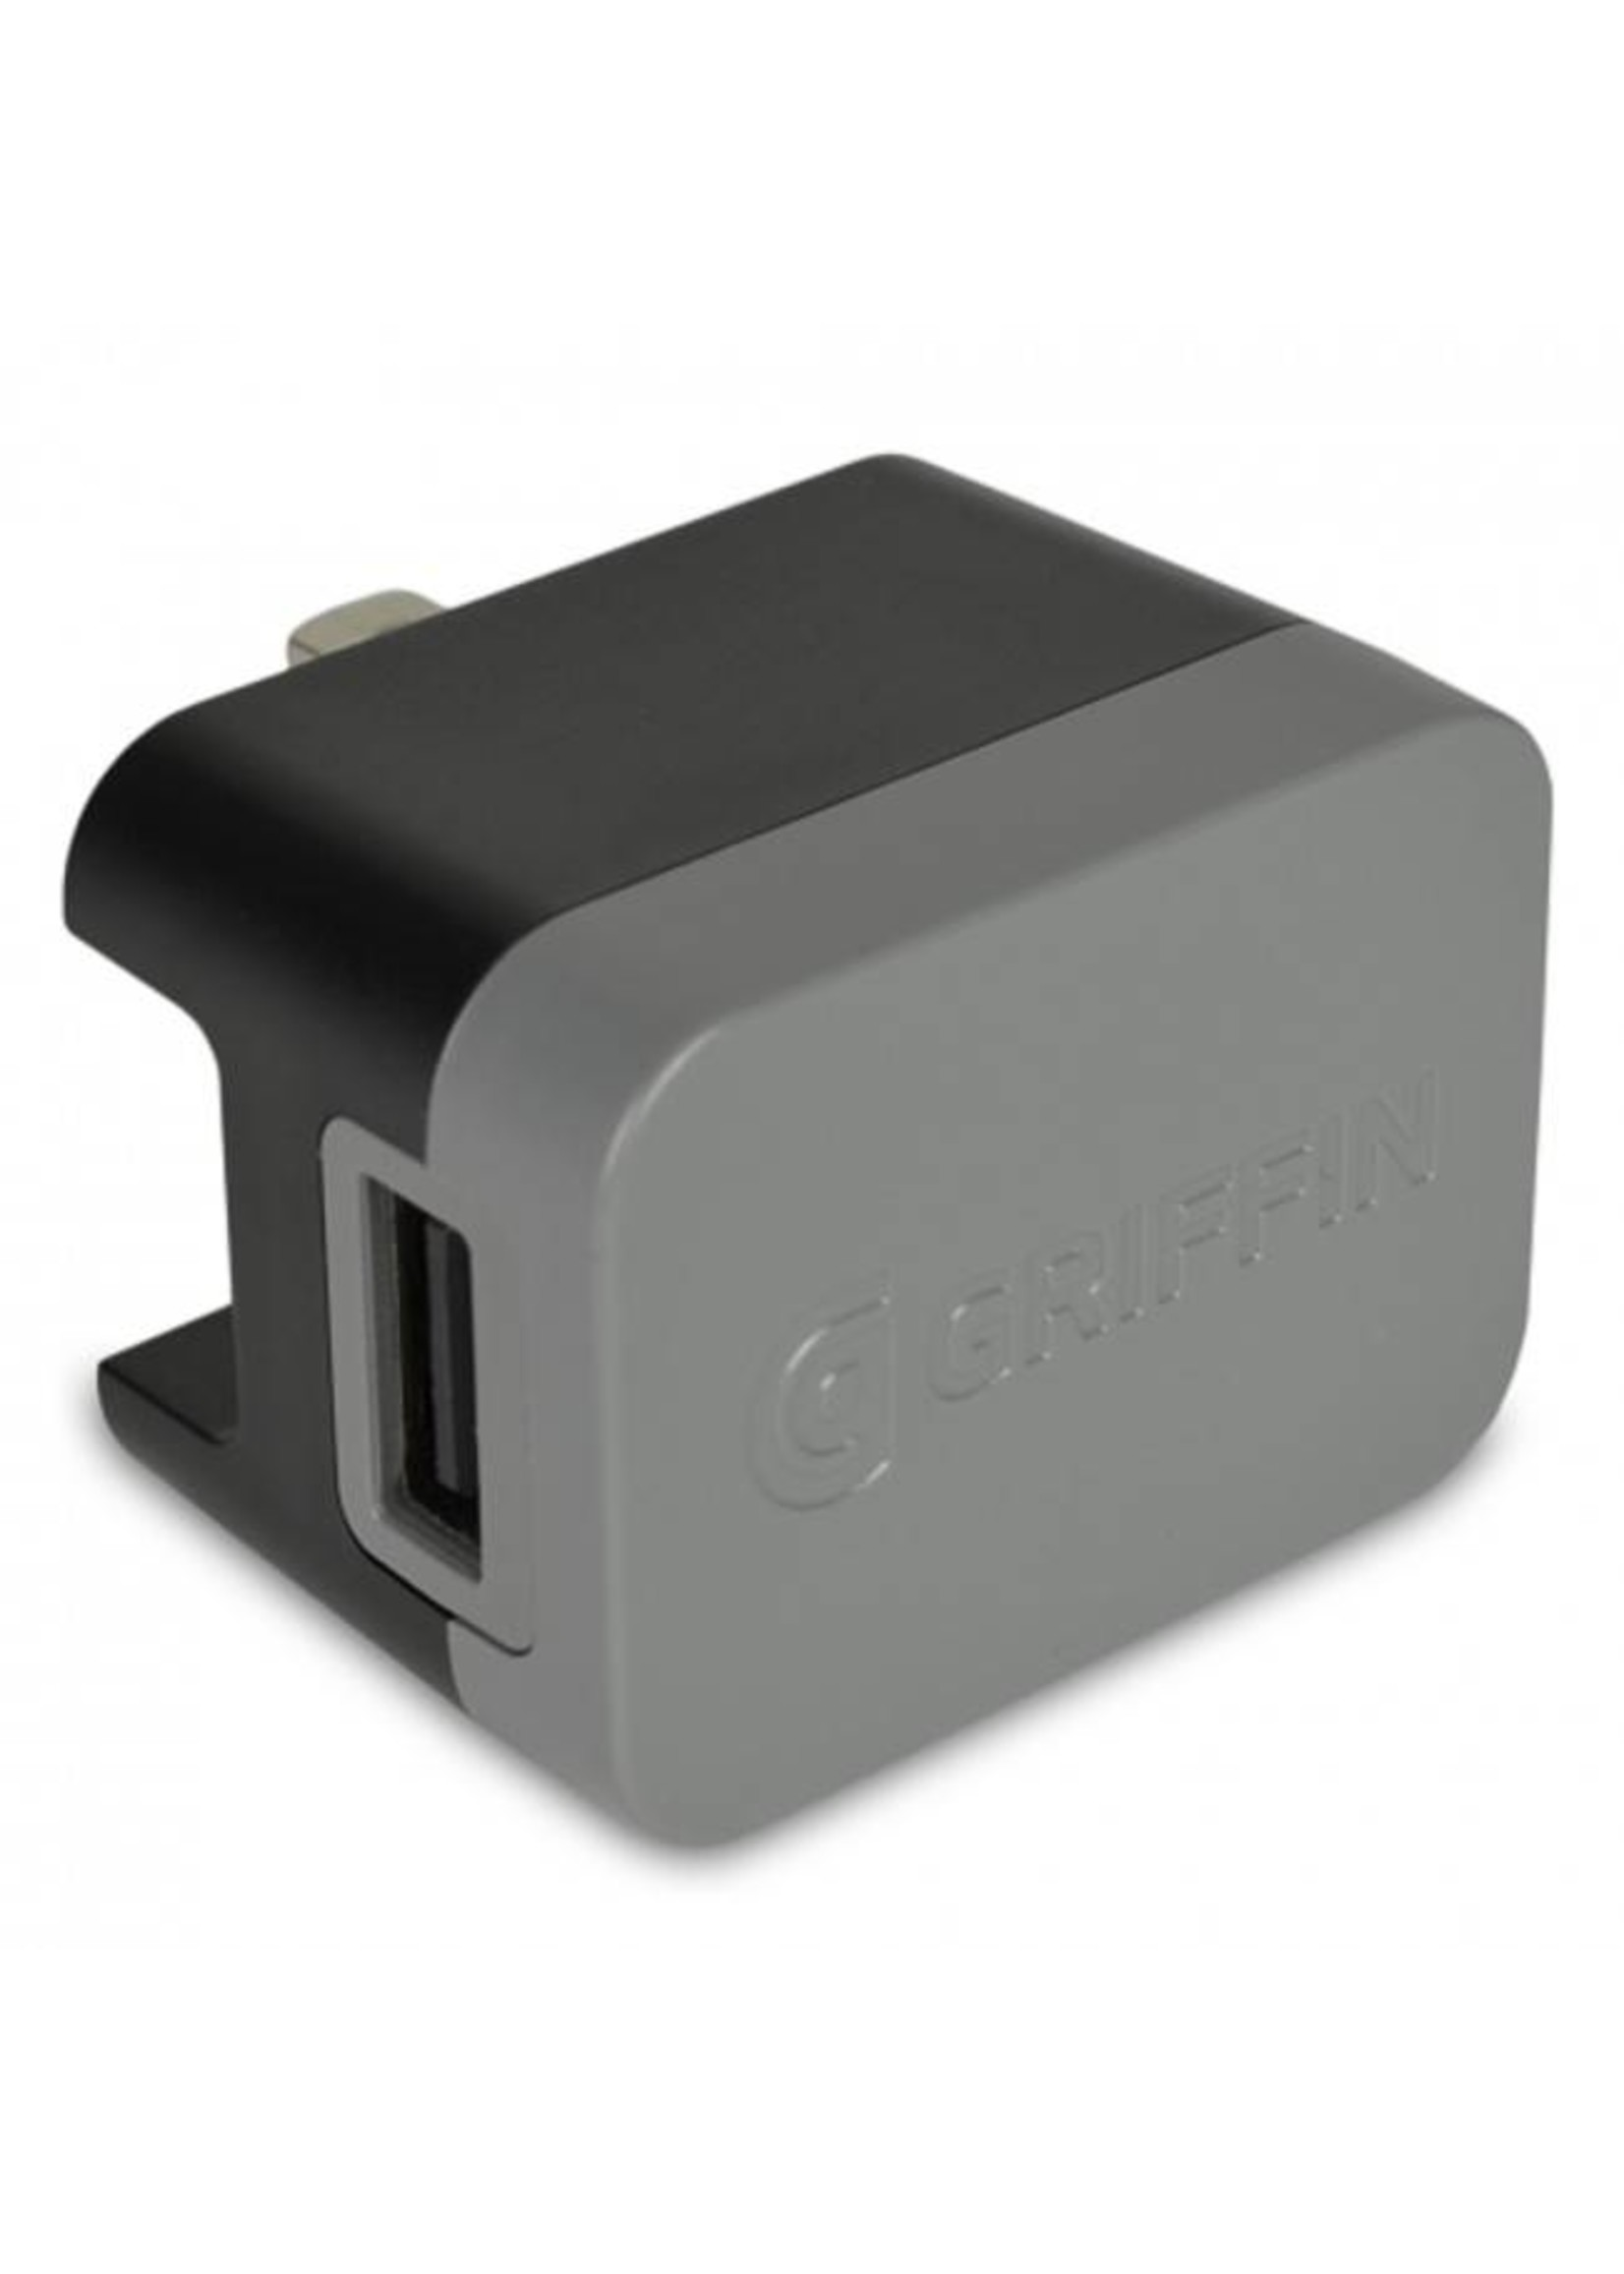 Griffin Griffin USB Wall Charger 2.4A 12W